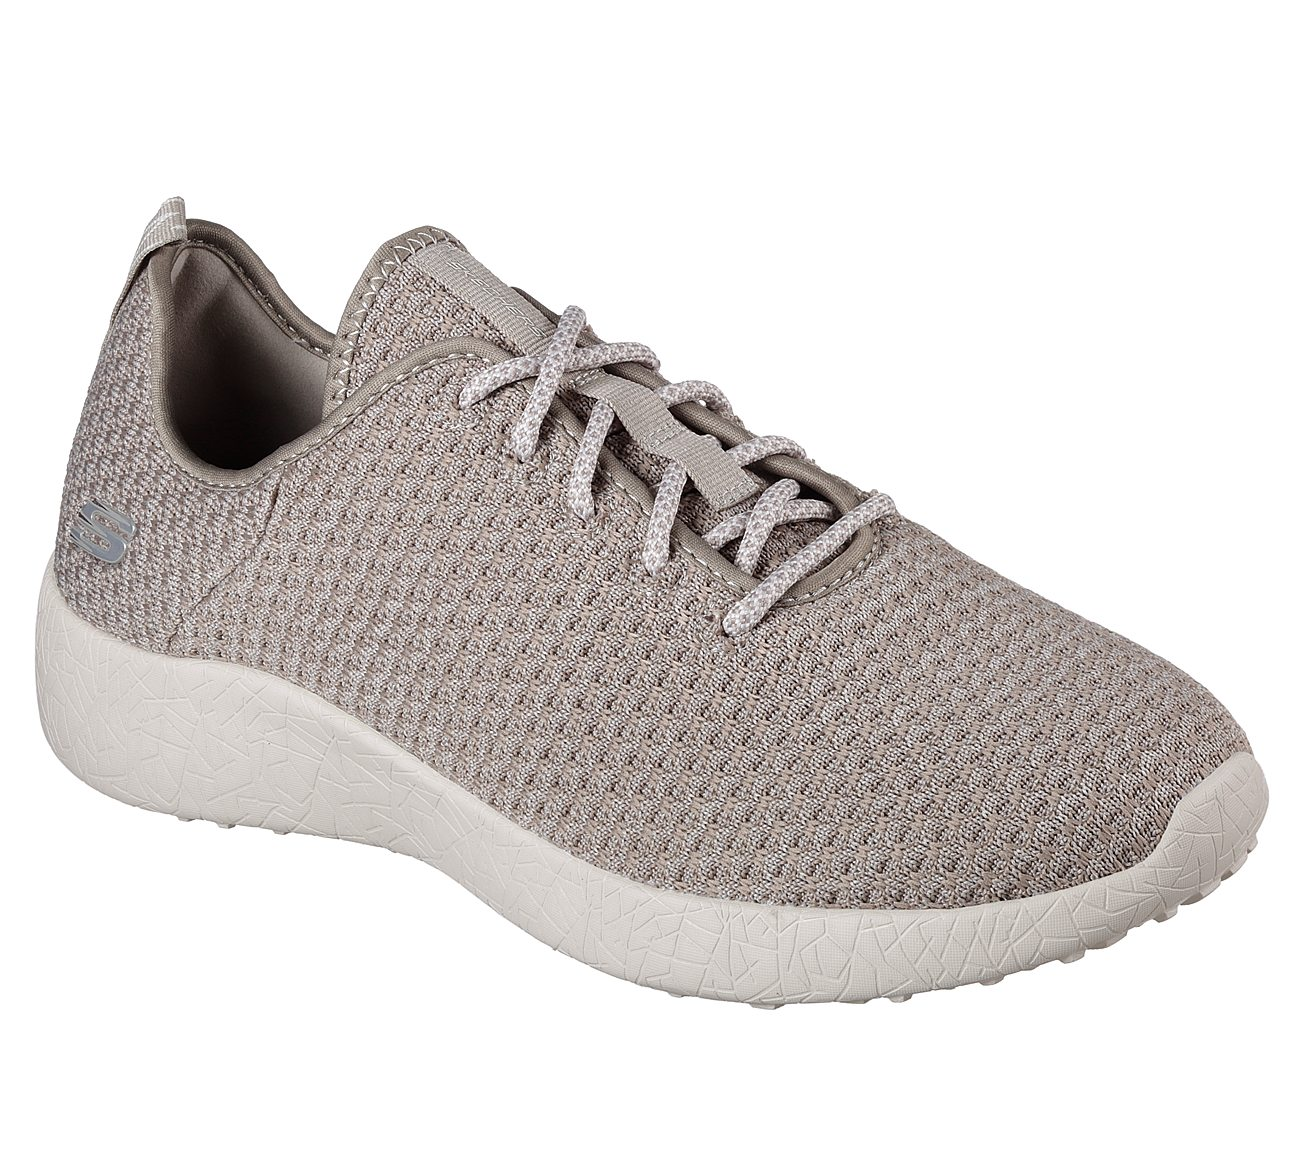 a9fa16b19db5 Buy SKECHERS Burst - Donlen Sport Shoes only  46.00